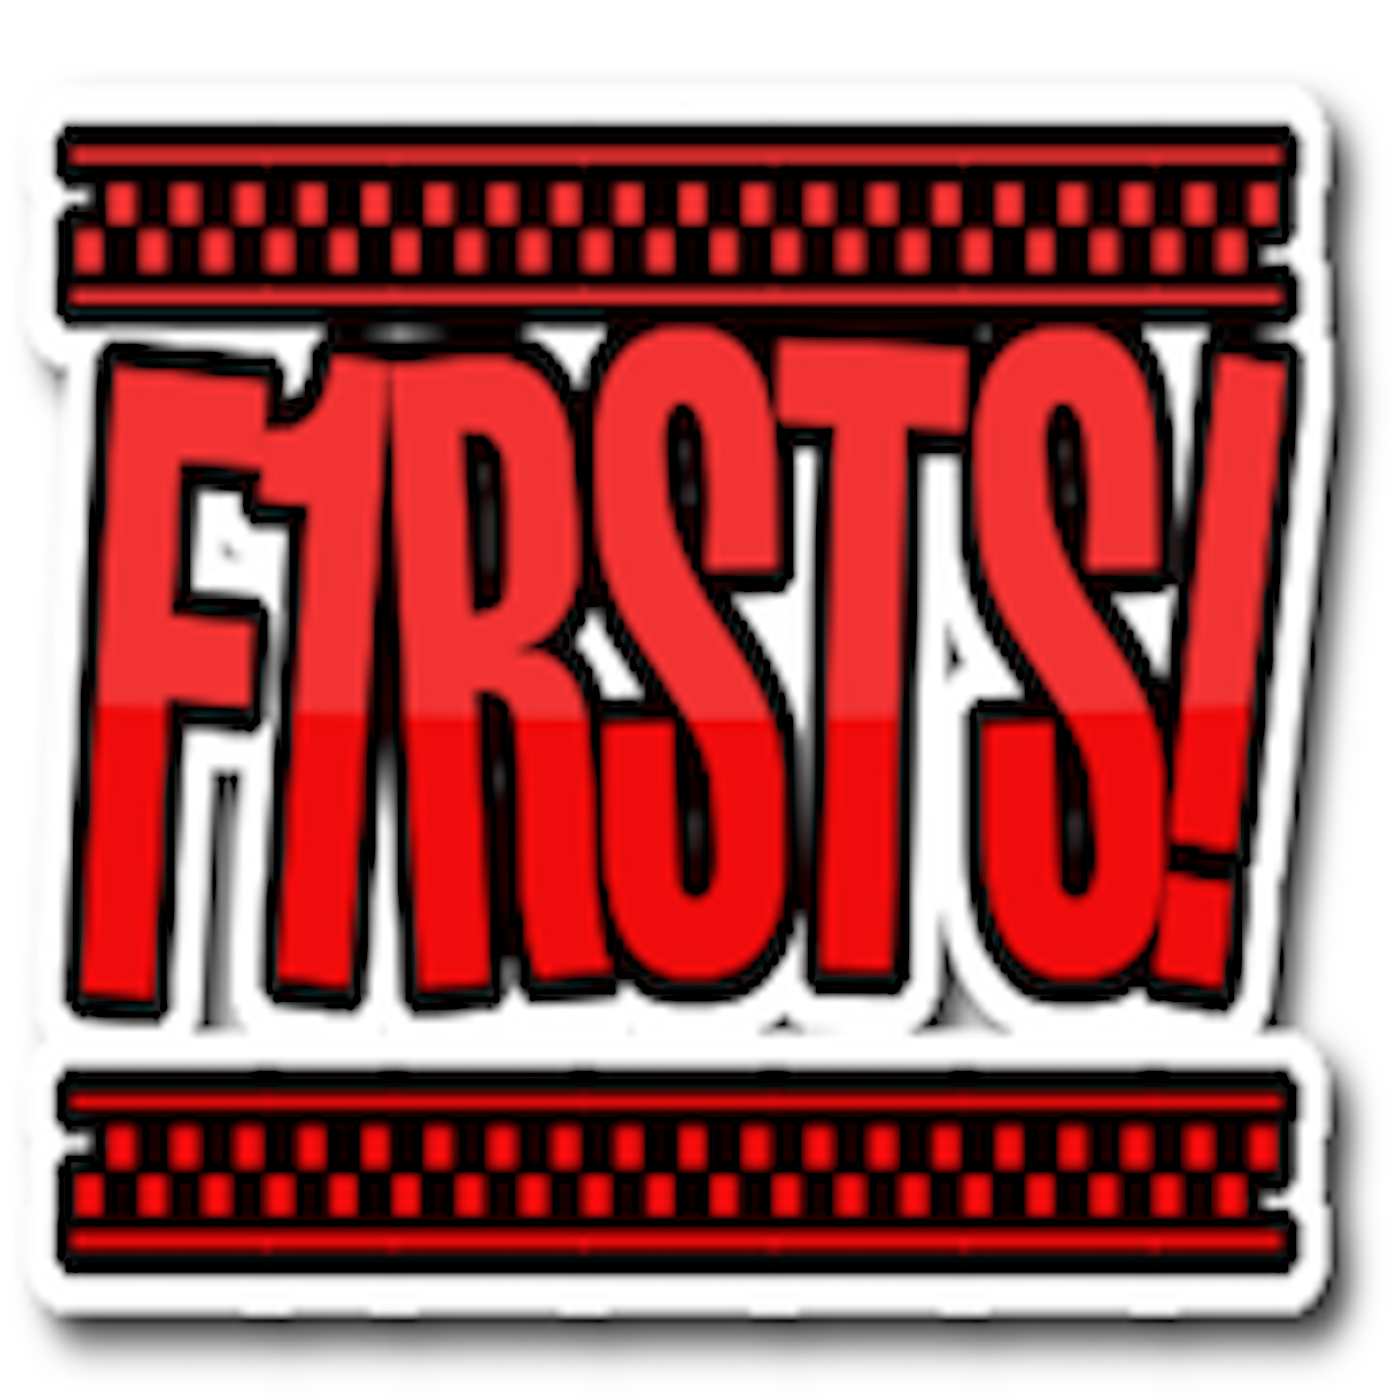 Firsts! - November 2, 2018 - First Experience With Death; First Internet Memory